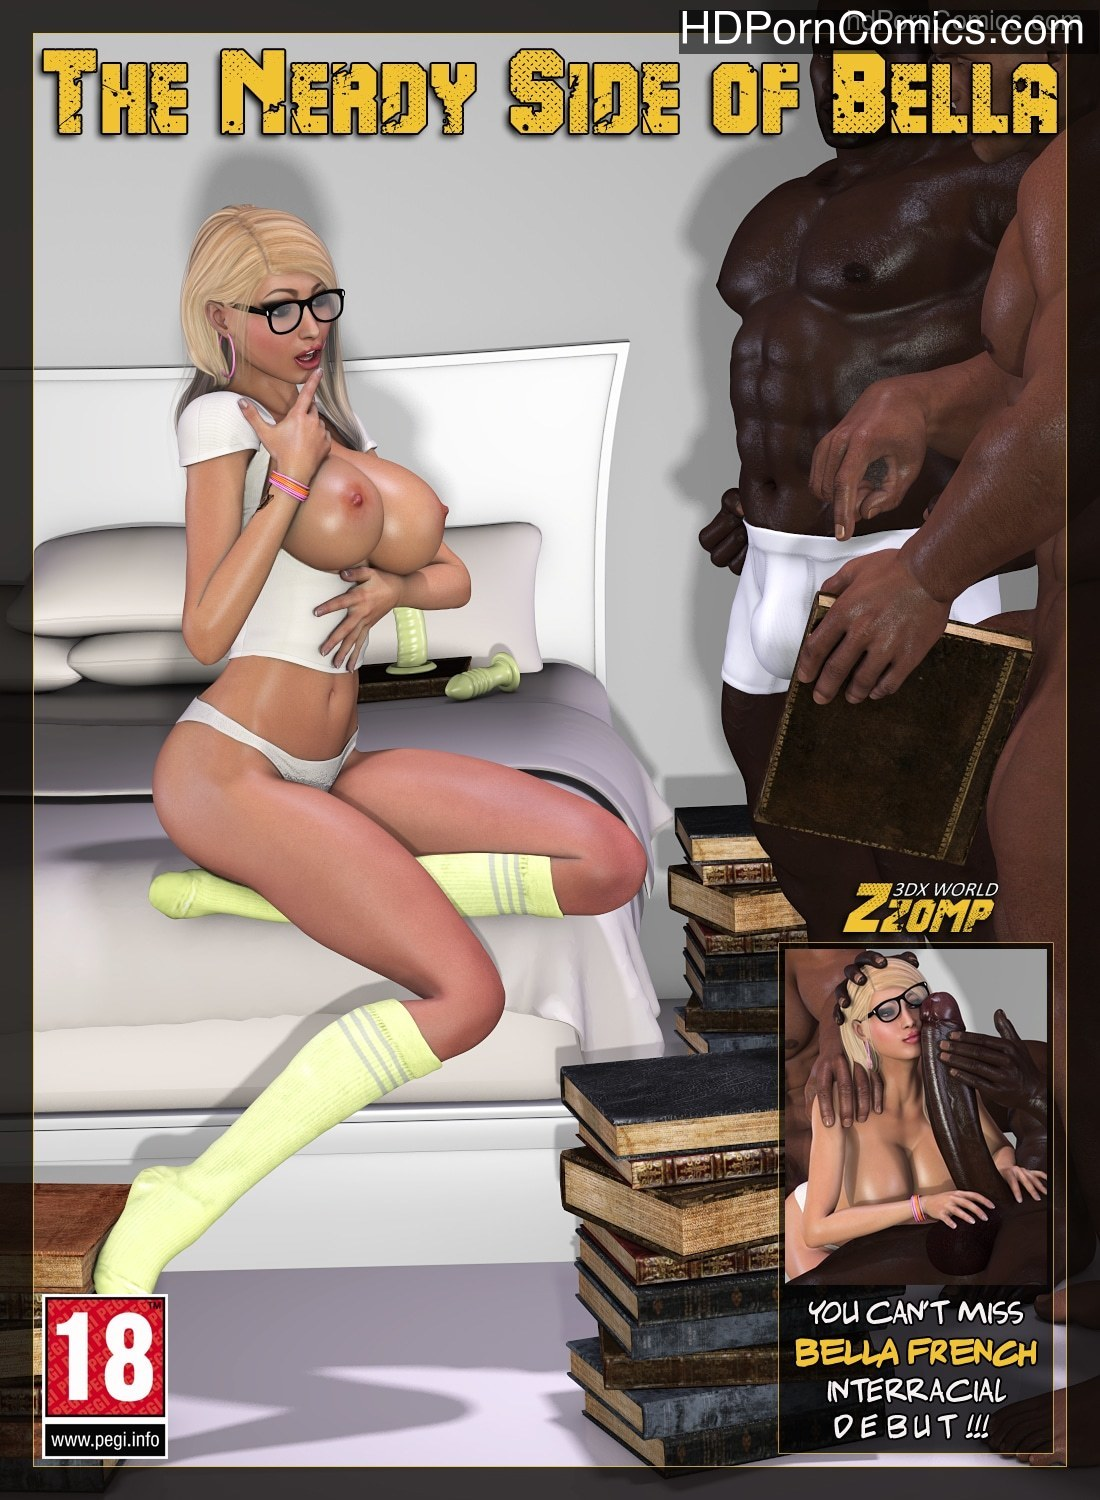 Zzomp -The Nerdy Side of Bella free Cartoon Porn Comic